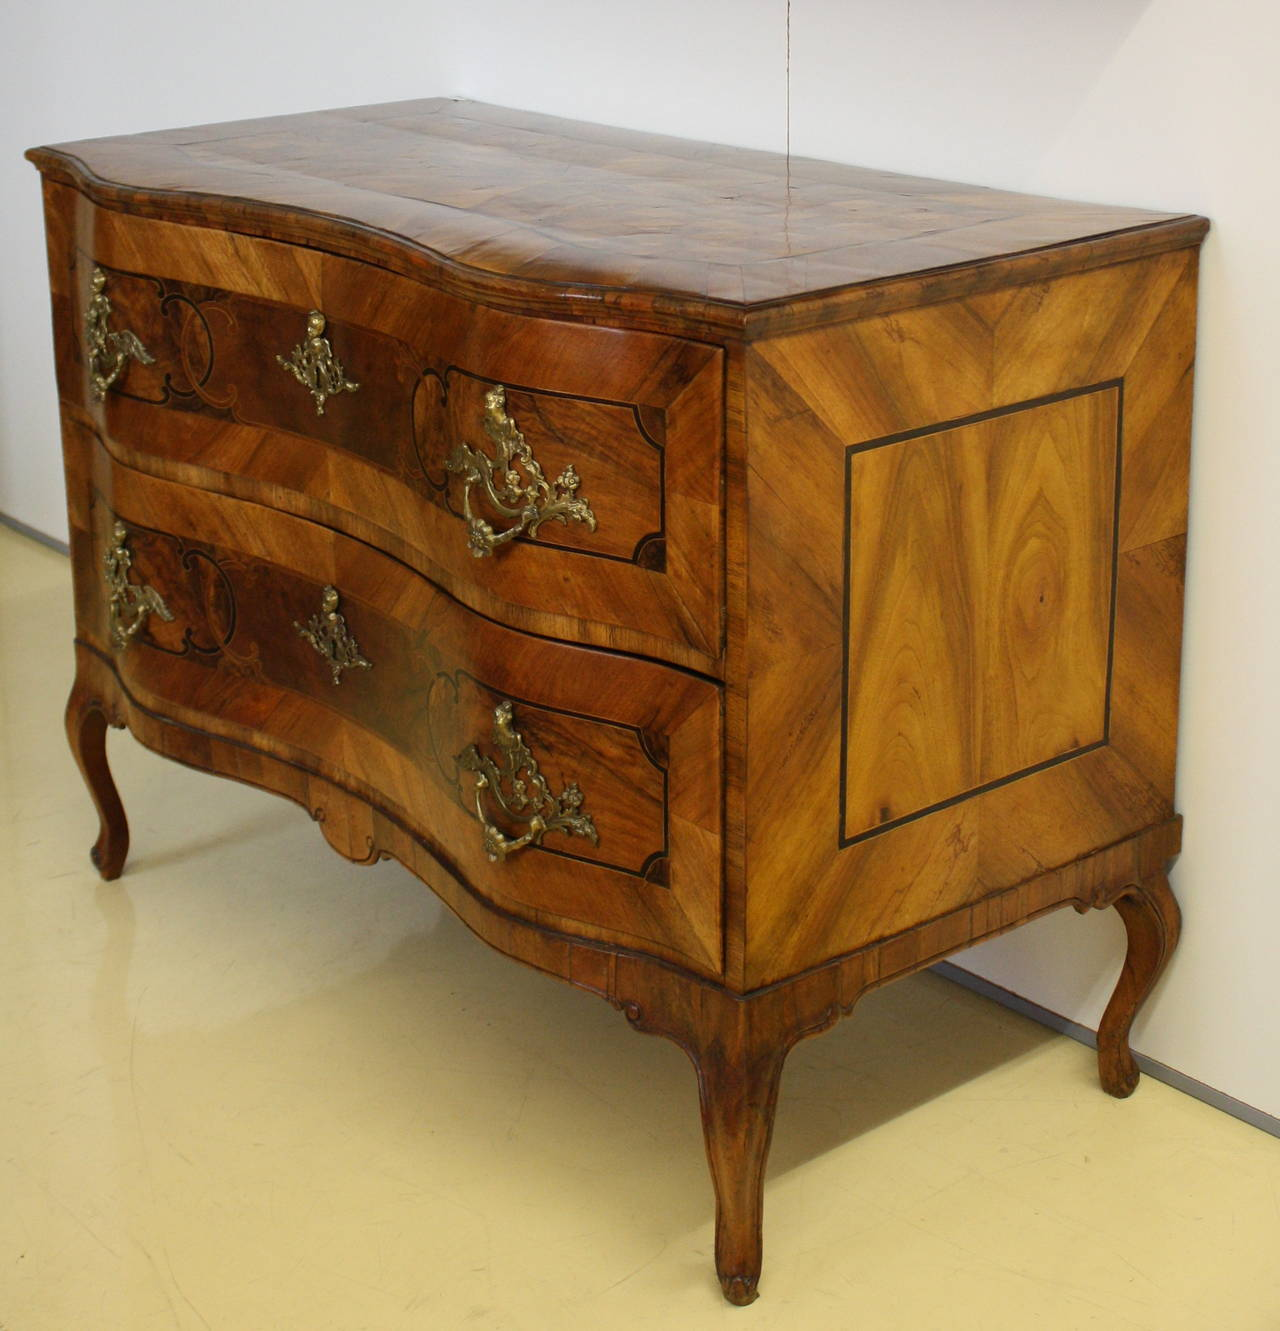 18th century elegant baroque two drawer commode at 1stdibs. Black Bedroom Furniture Sets. Home Design Ideas